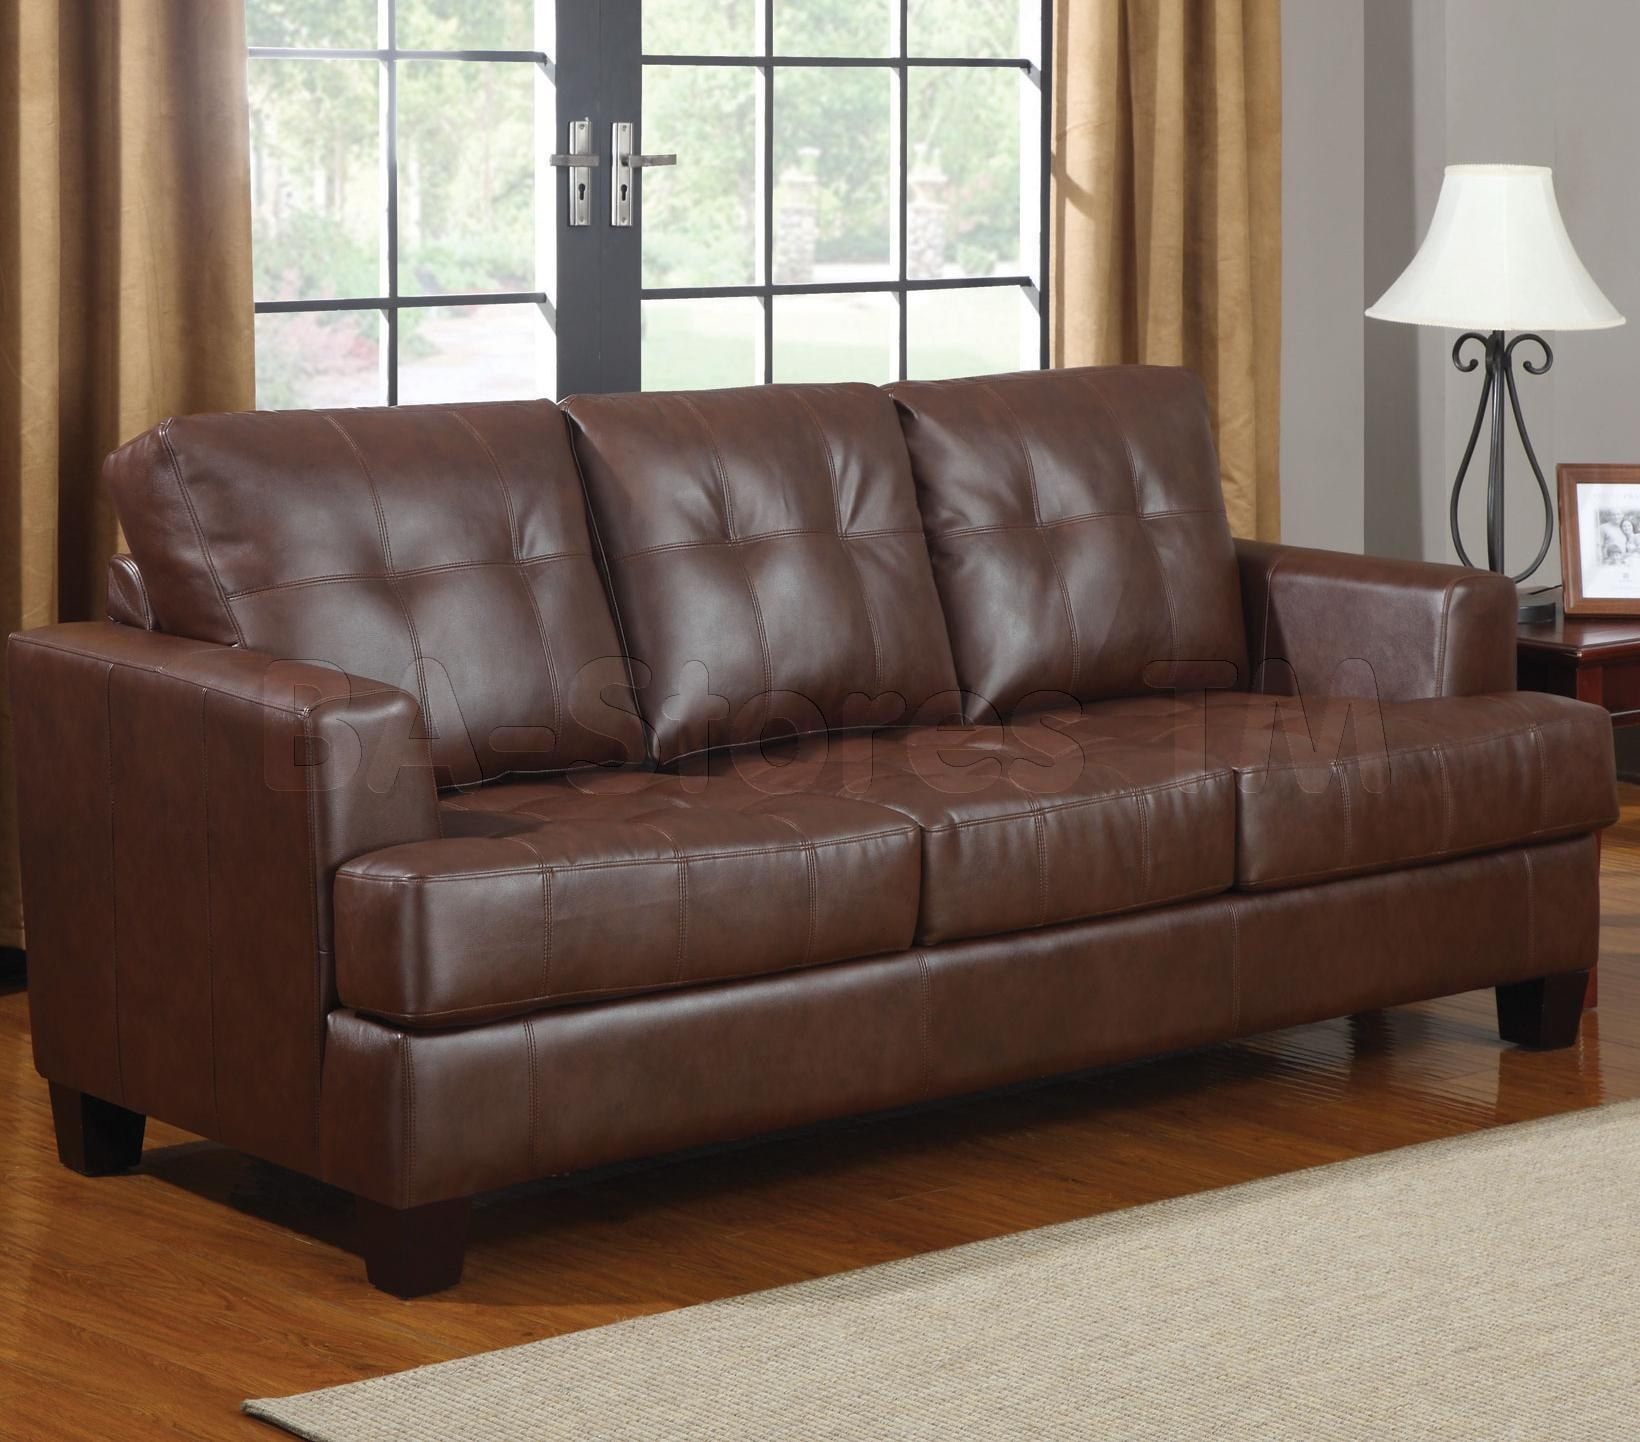 Living Room : Furniture Interior Ideas Leather Sectionals On Sale Intended For Contemporary Brown Leather Sofas (View 17 of 20)